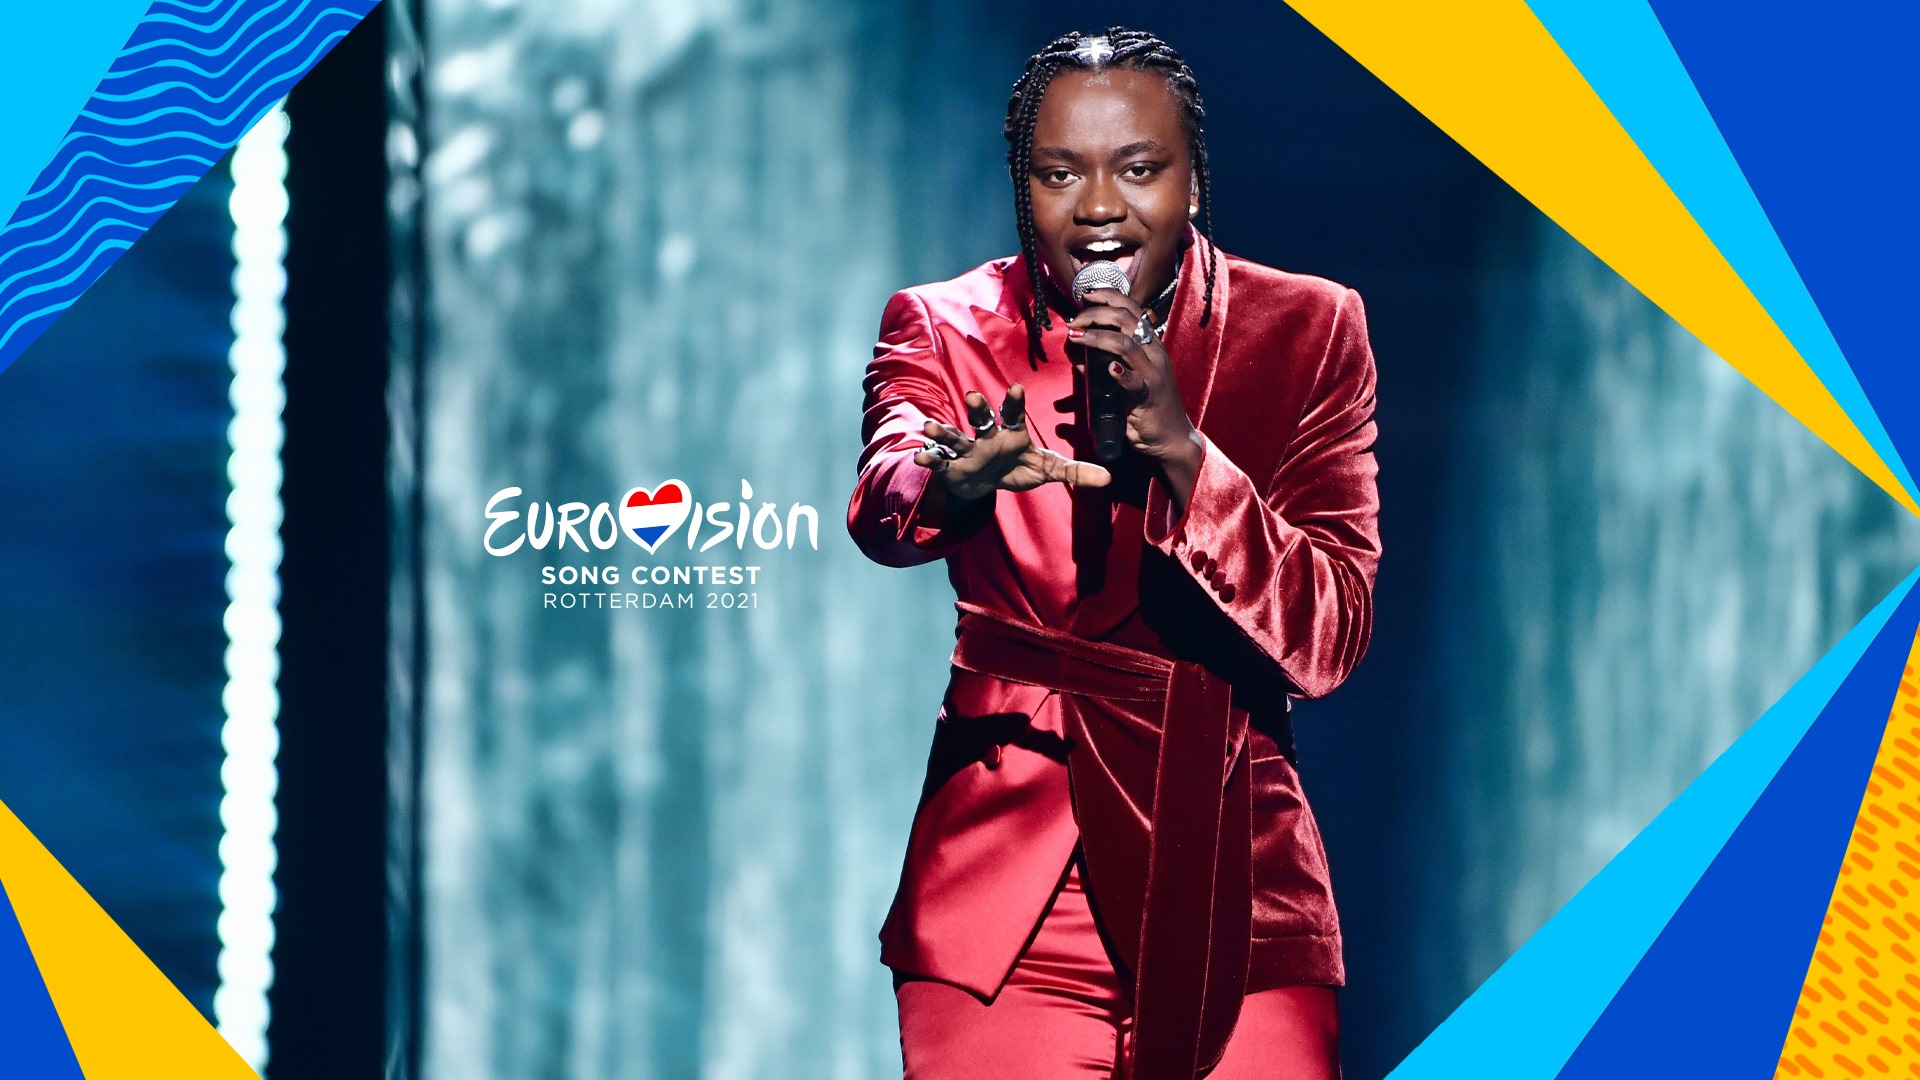 Tusse candidat suédois a l'Eurovision 2021